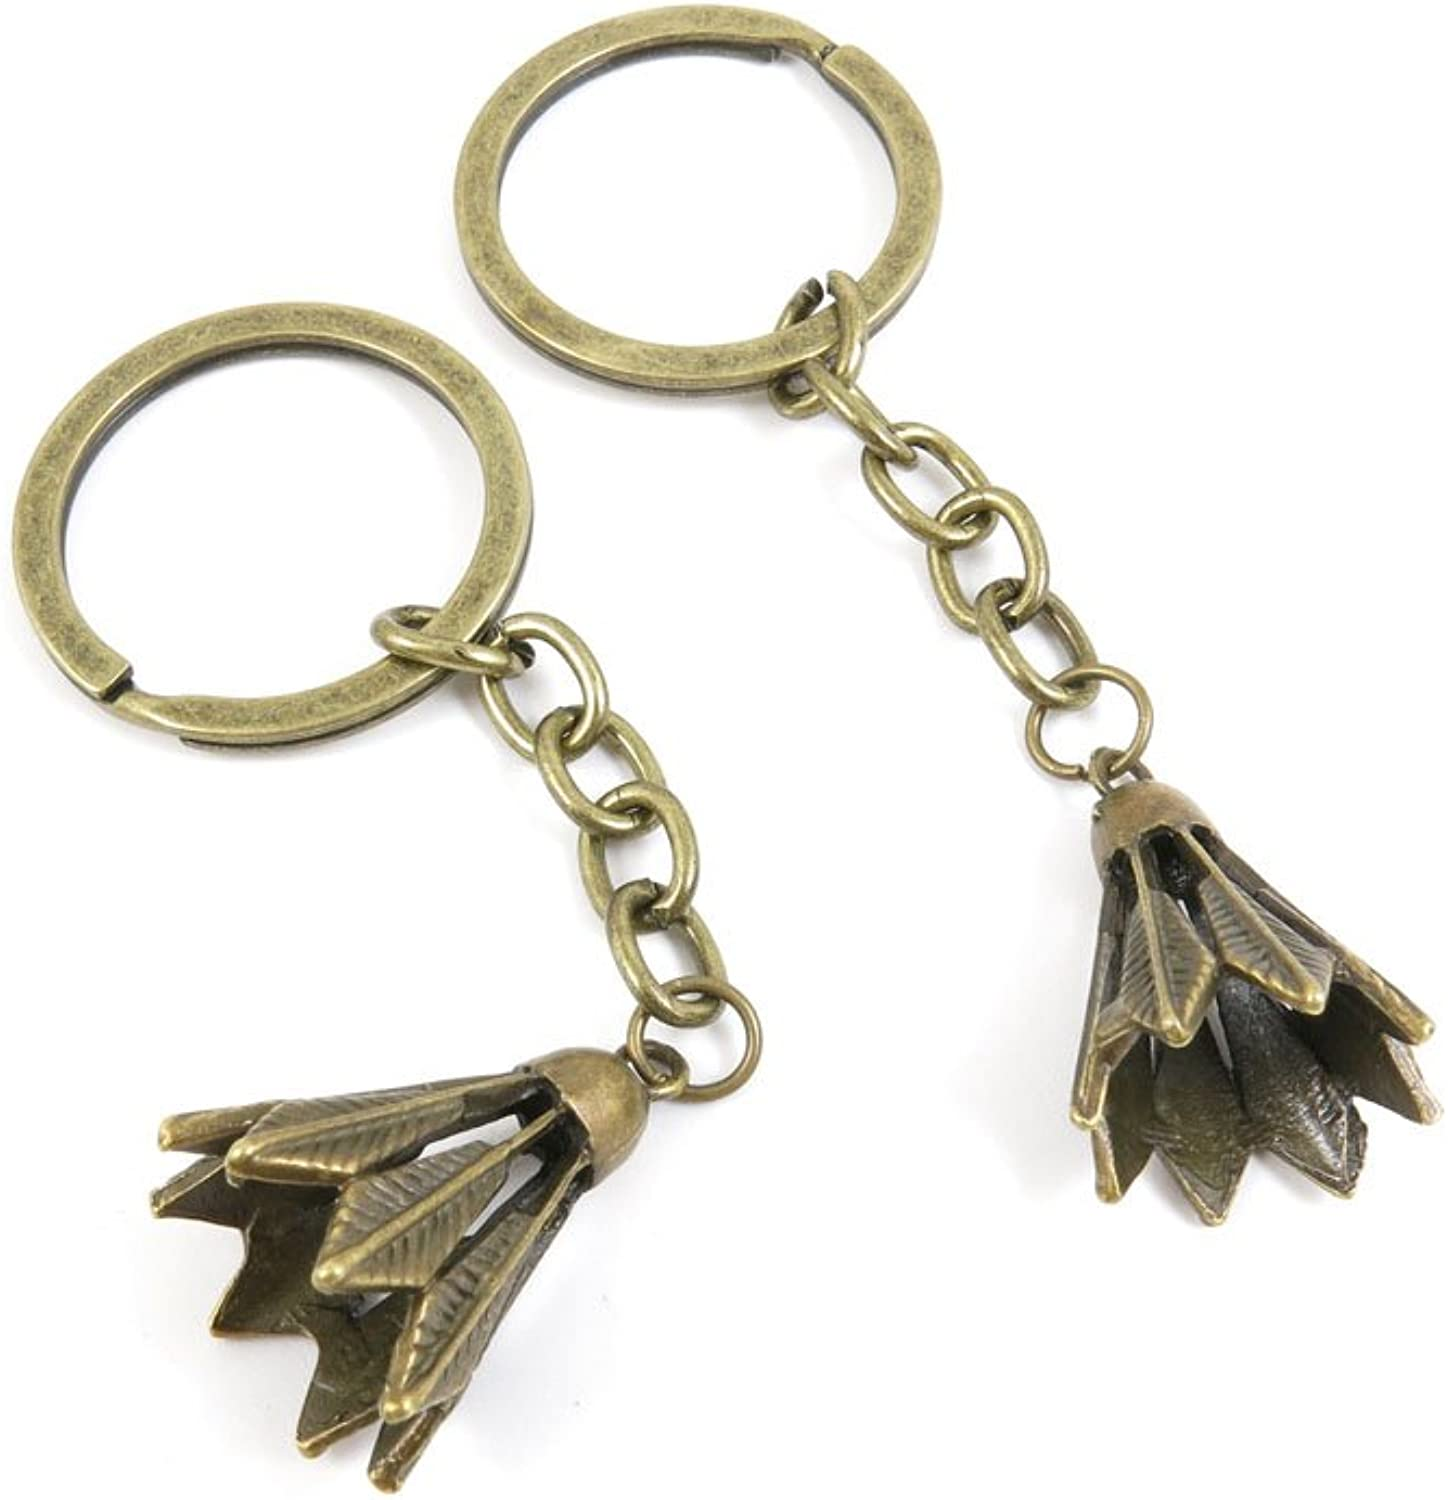 100 PCS Keyrings Keychains Key Ring Chains Tags Jewelry Findings Clasps Buckles Supplies U1IZ5 Badminton Shuttlecock